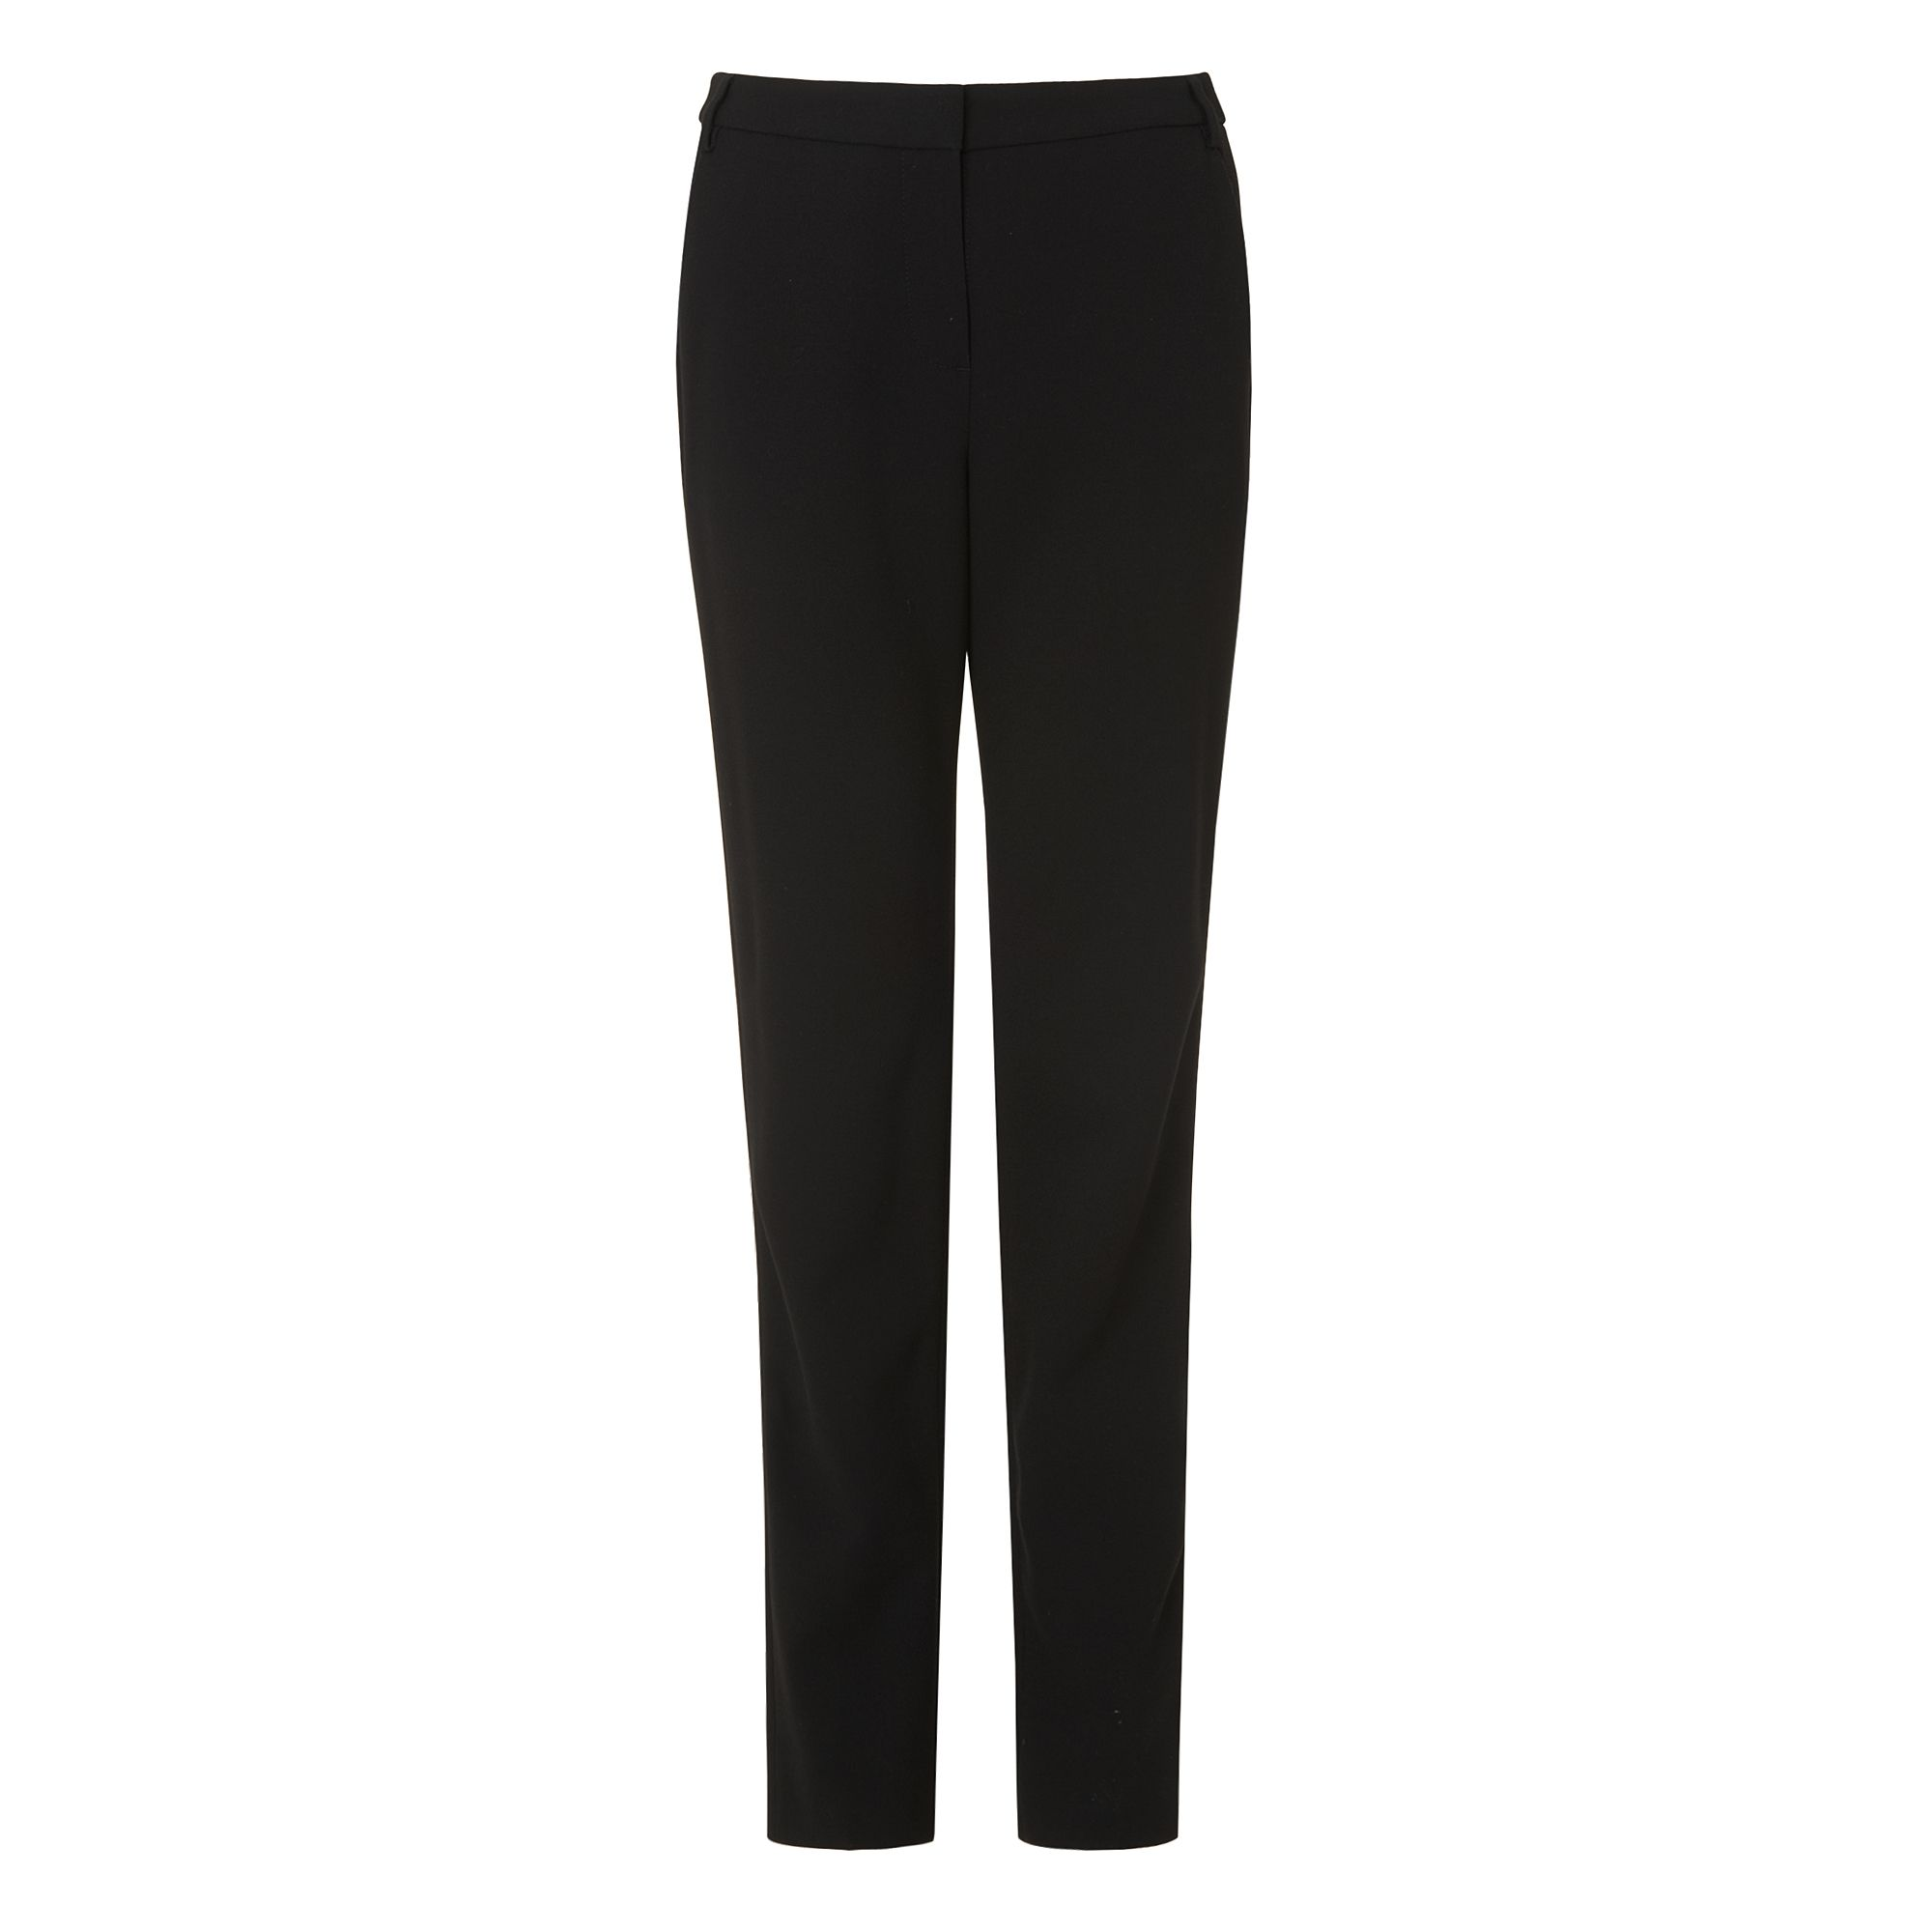 L.K. Bennett Evie Polyester Mix Trousers, Black